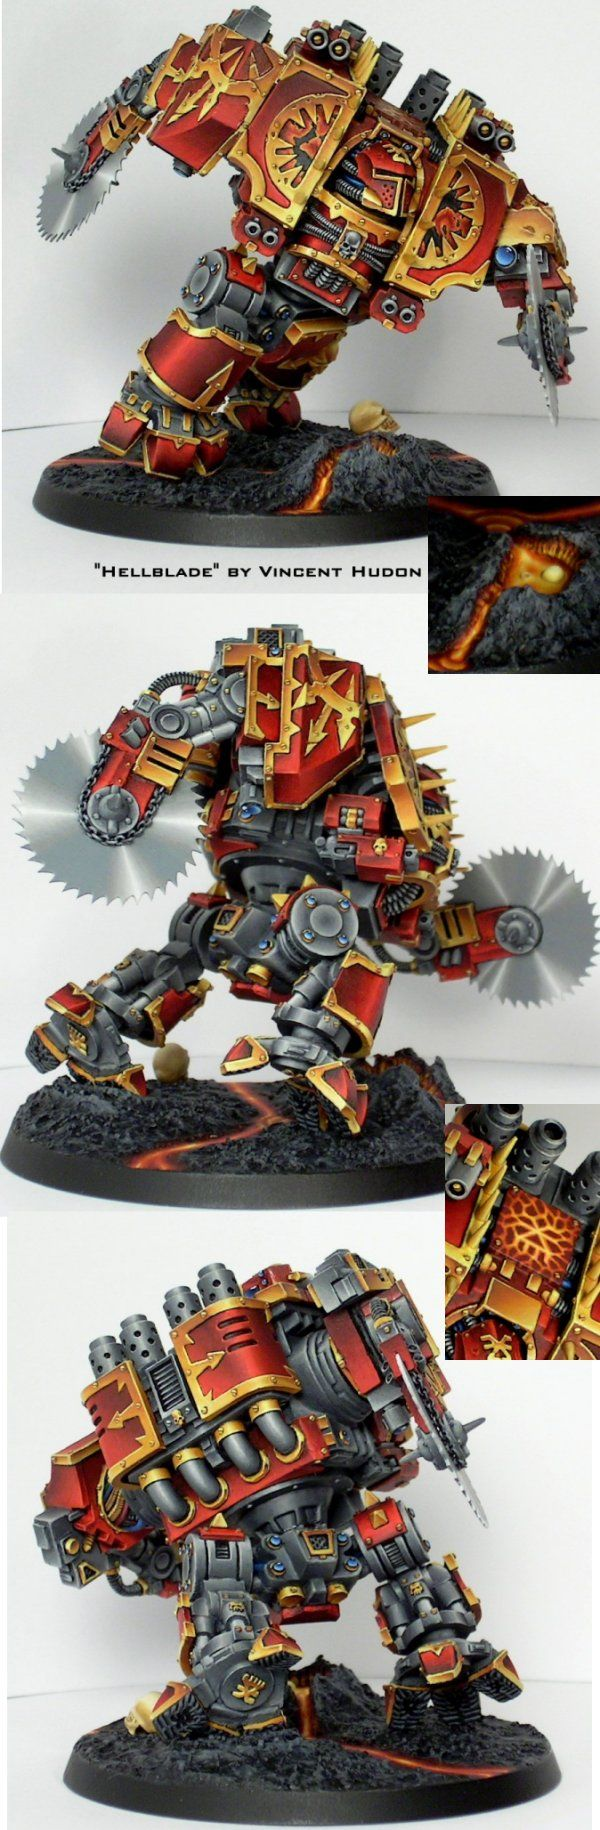 40k - World Eaters Dreadnought 'Hellblade' - Baltimore GD 2005 GOLD 40k Vehicle